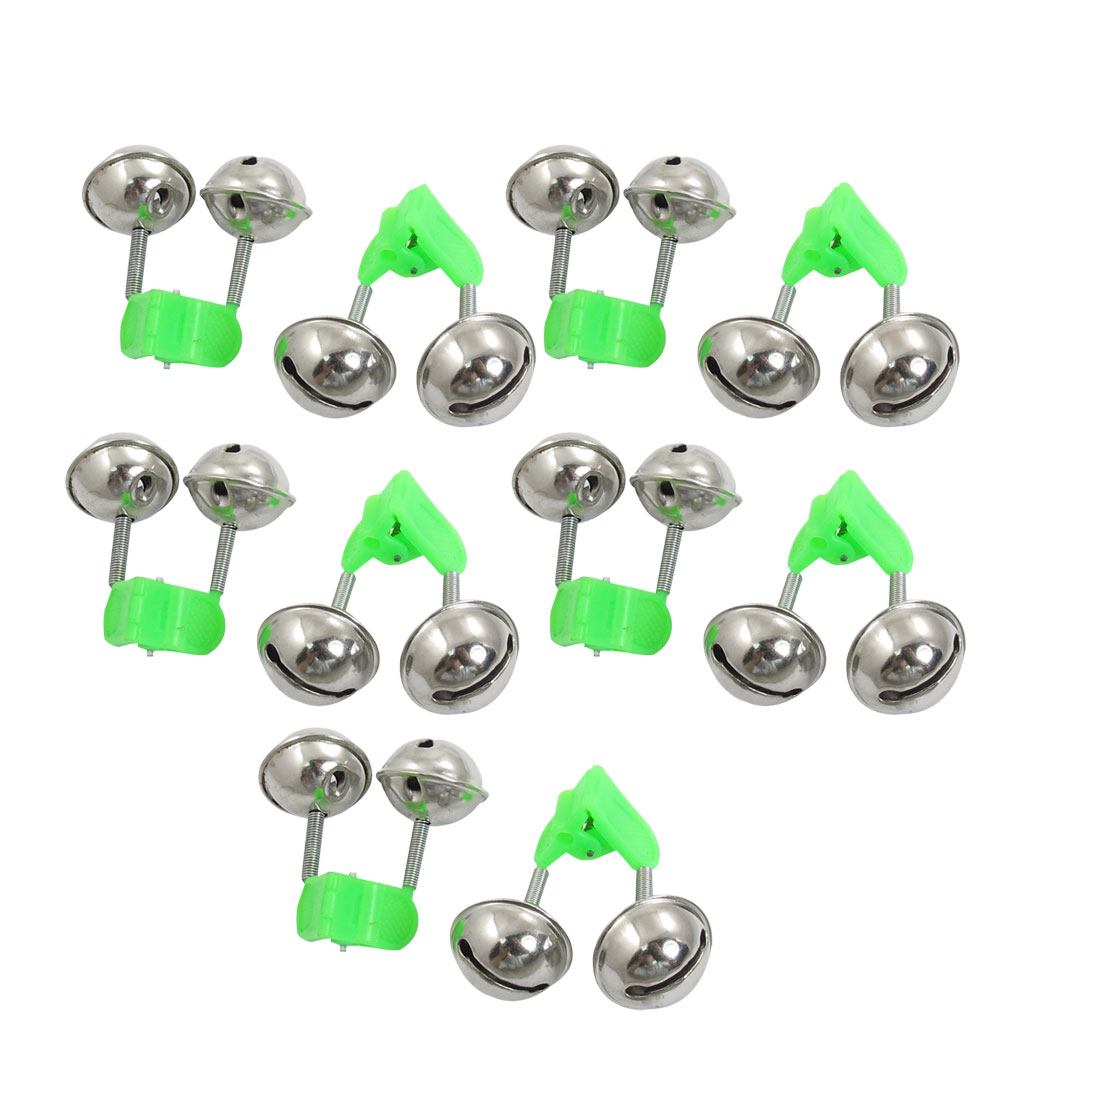 Green Silver Tone Spring Load Siamesed Fishing Alarm Bells 10 Pcs